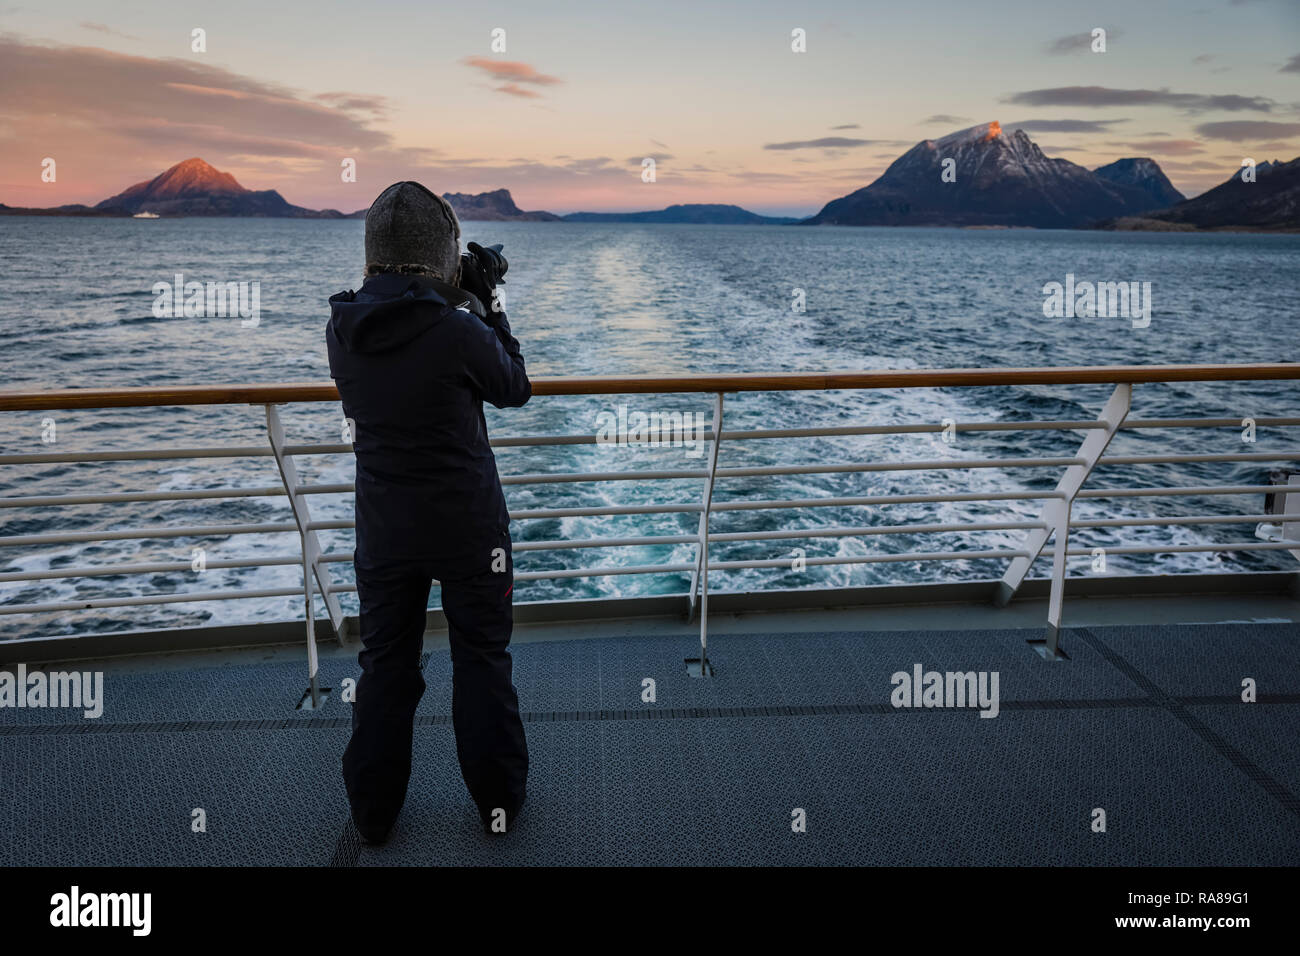 On board the Hurtigruten coastal steamer, Norway. Stock Photo